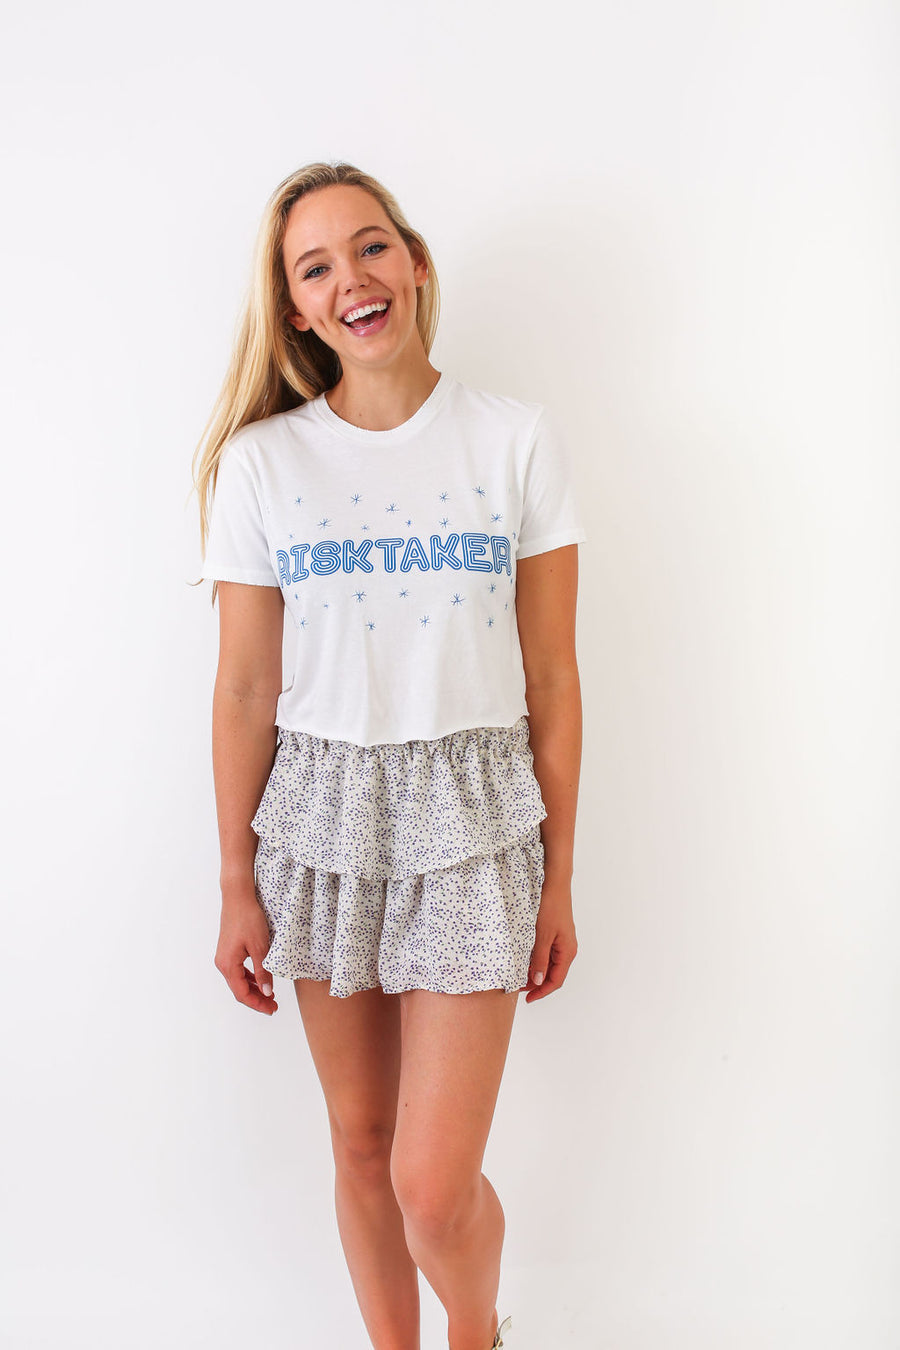 CROP TOP BLUE RISKTAKER